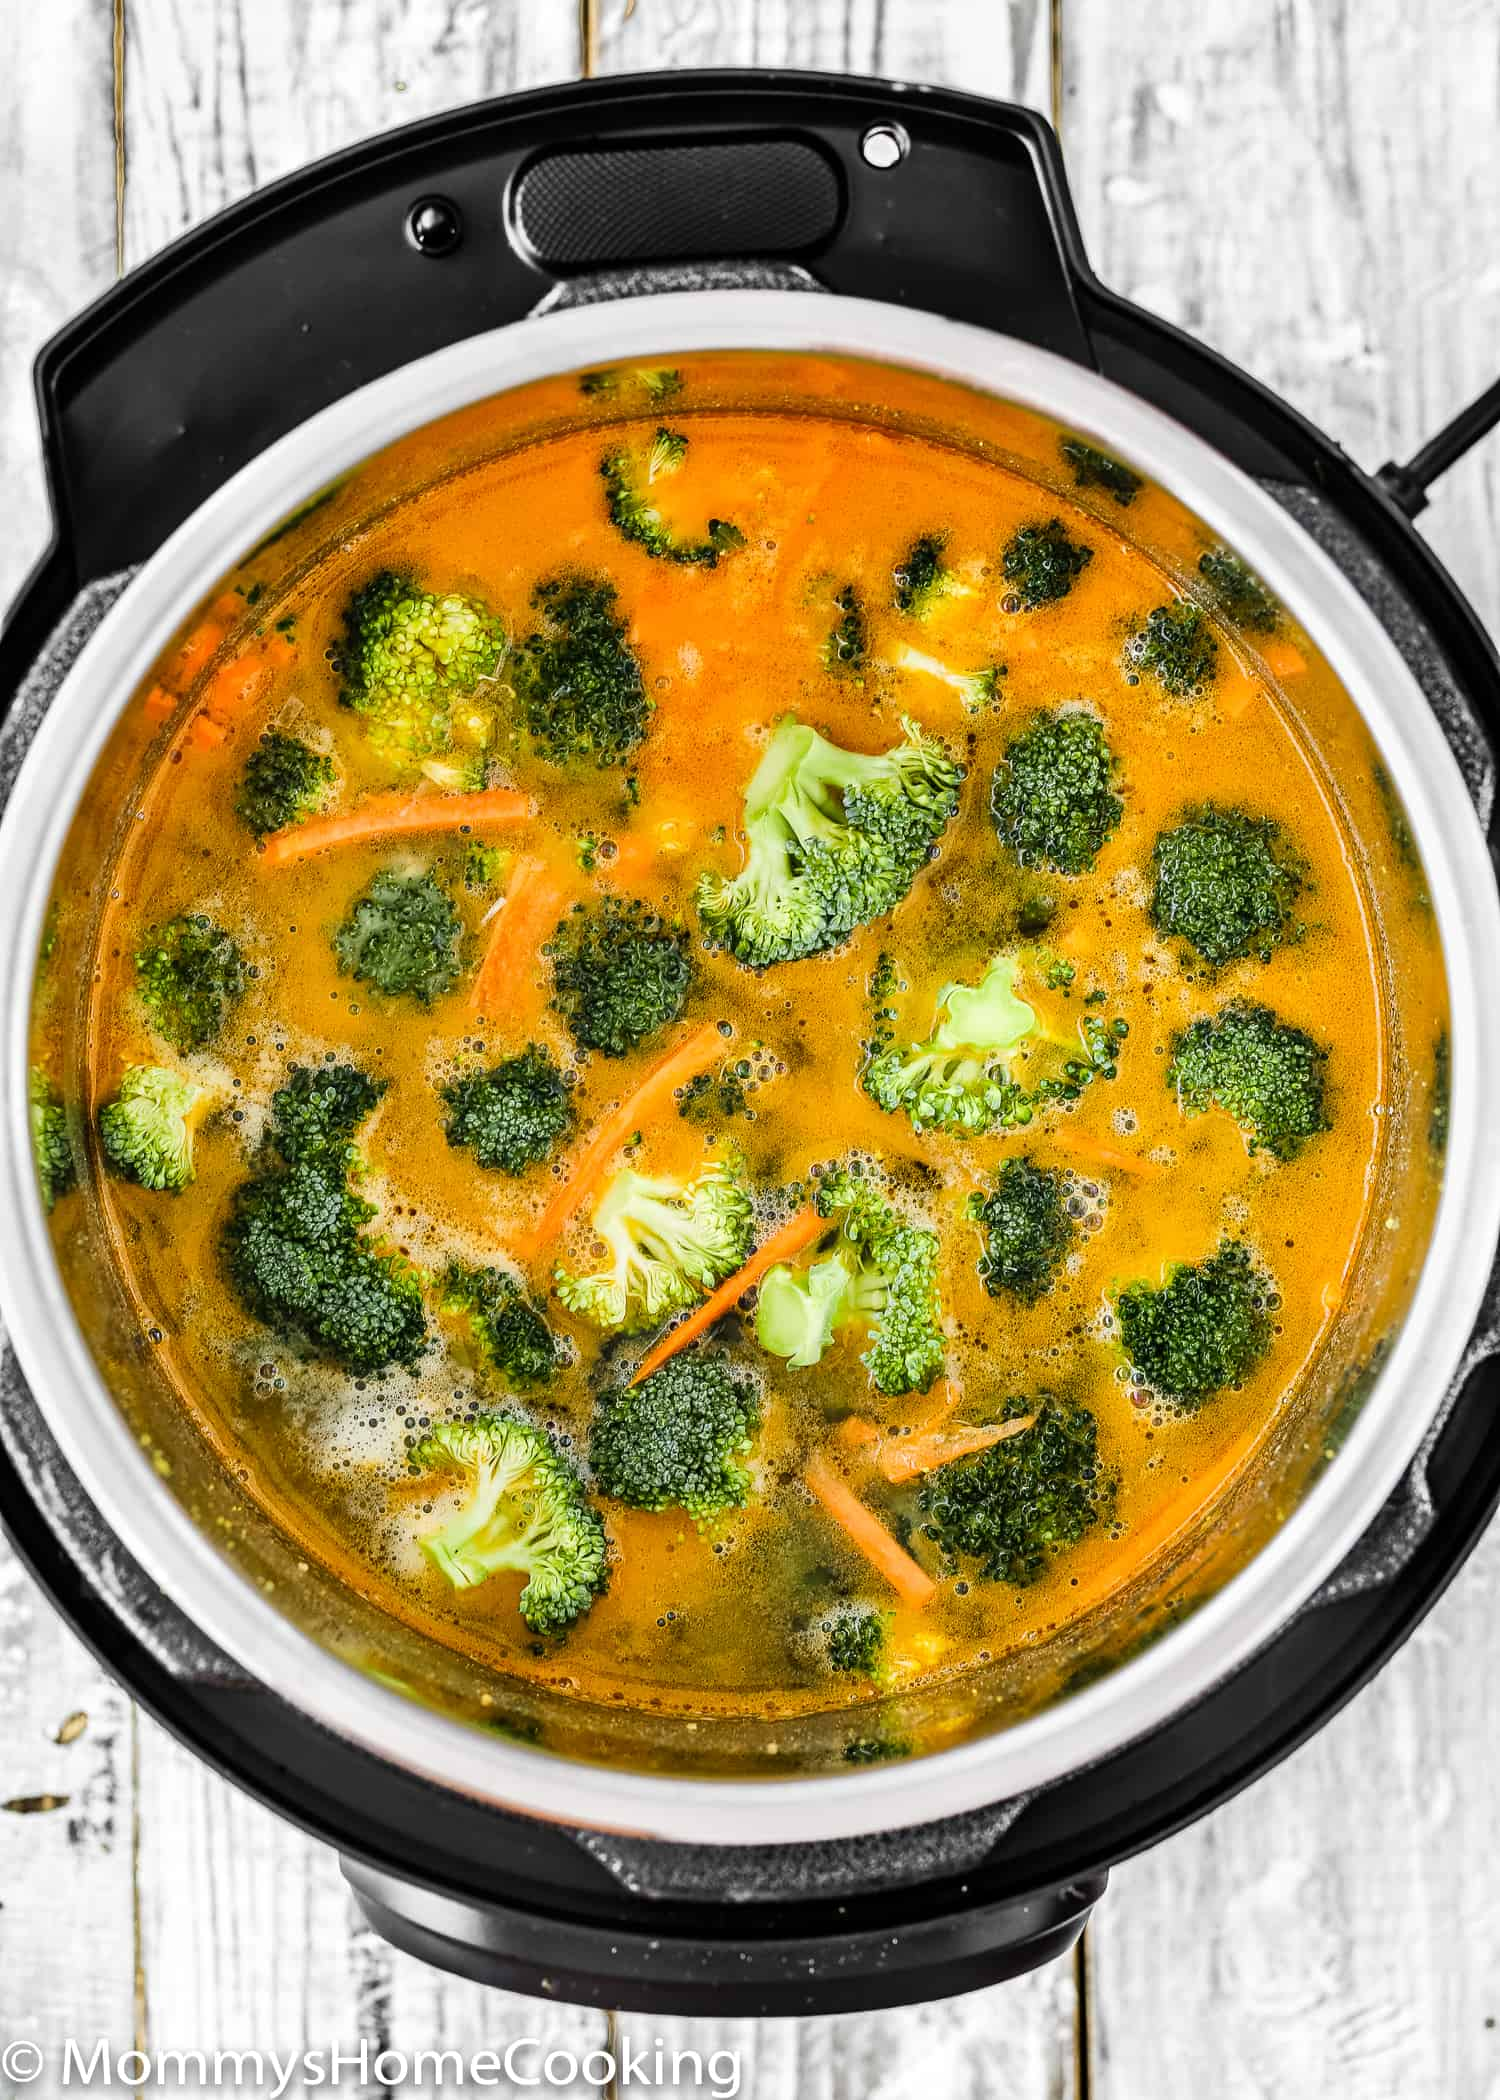 This Quick and Easy Instant Pot Broccoli Cheddar Cheese Soup Recipe is pure comfort food at its best! It's creamy, rich, and oh so cheesy. The best part is that this soup is ready in about 20 minutes fromstart to finish! https://mommyshomecooking.com